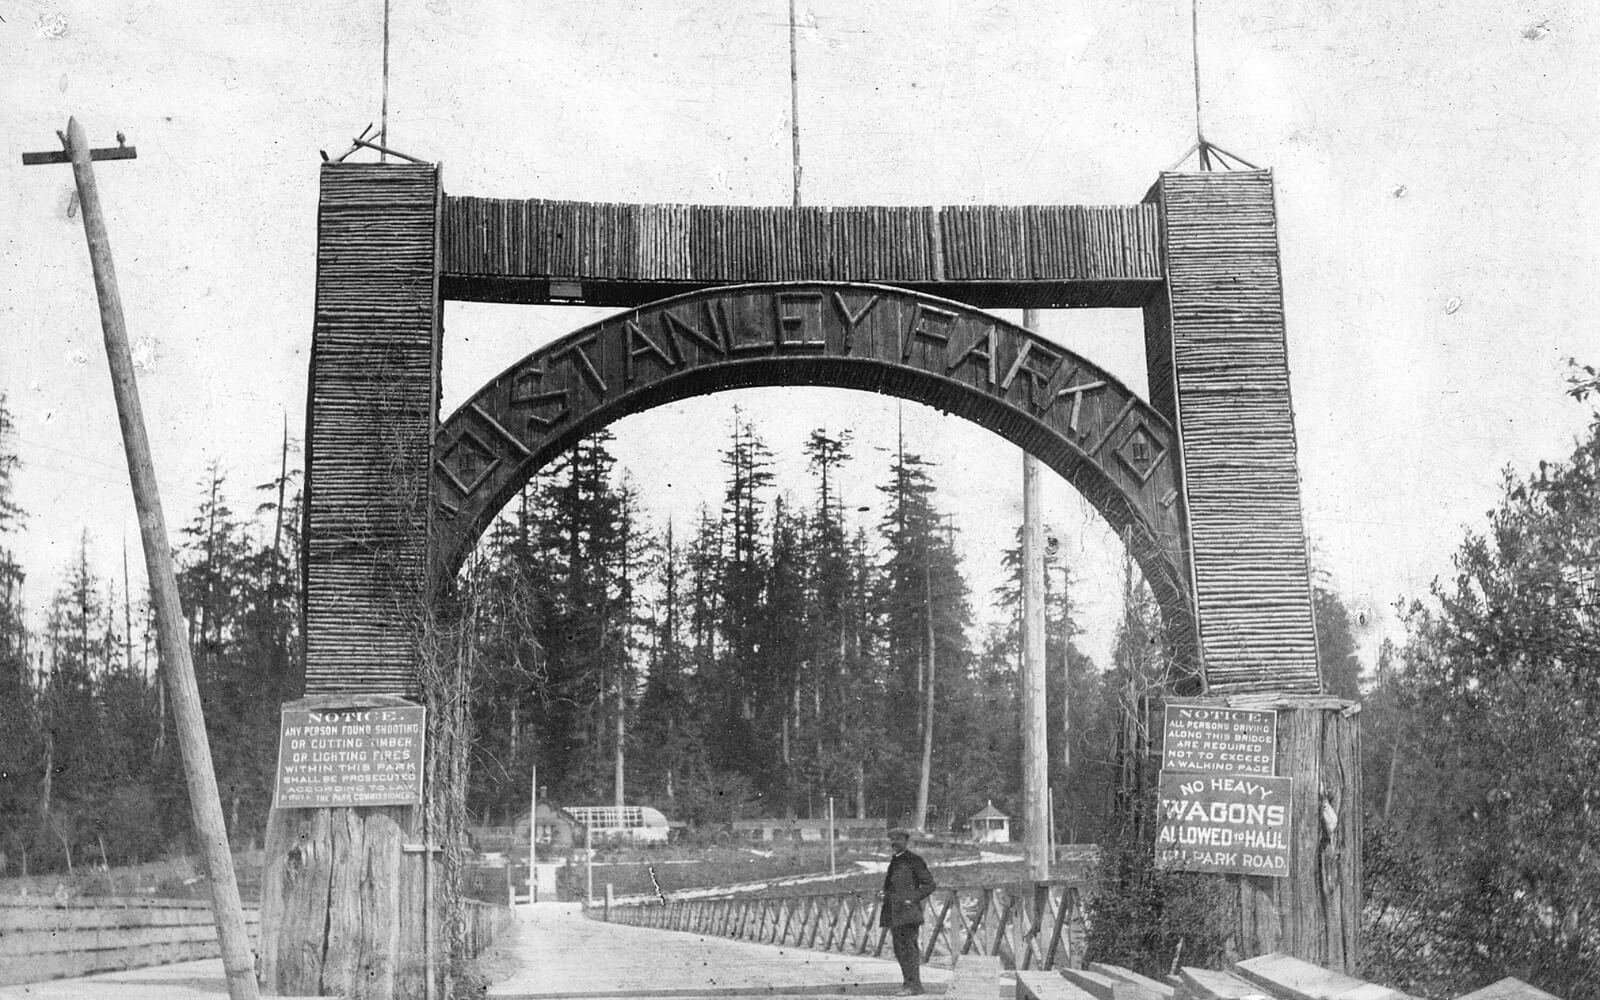 The entrance to Stanley Park in 1895